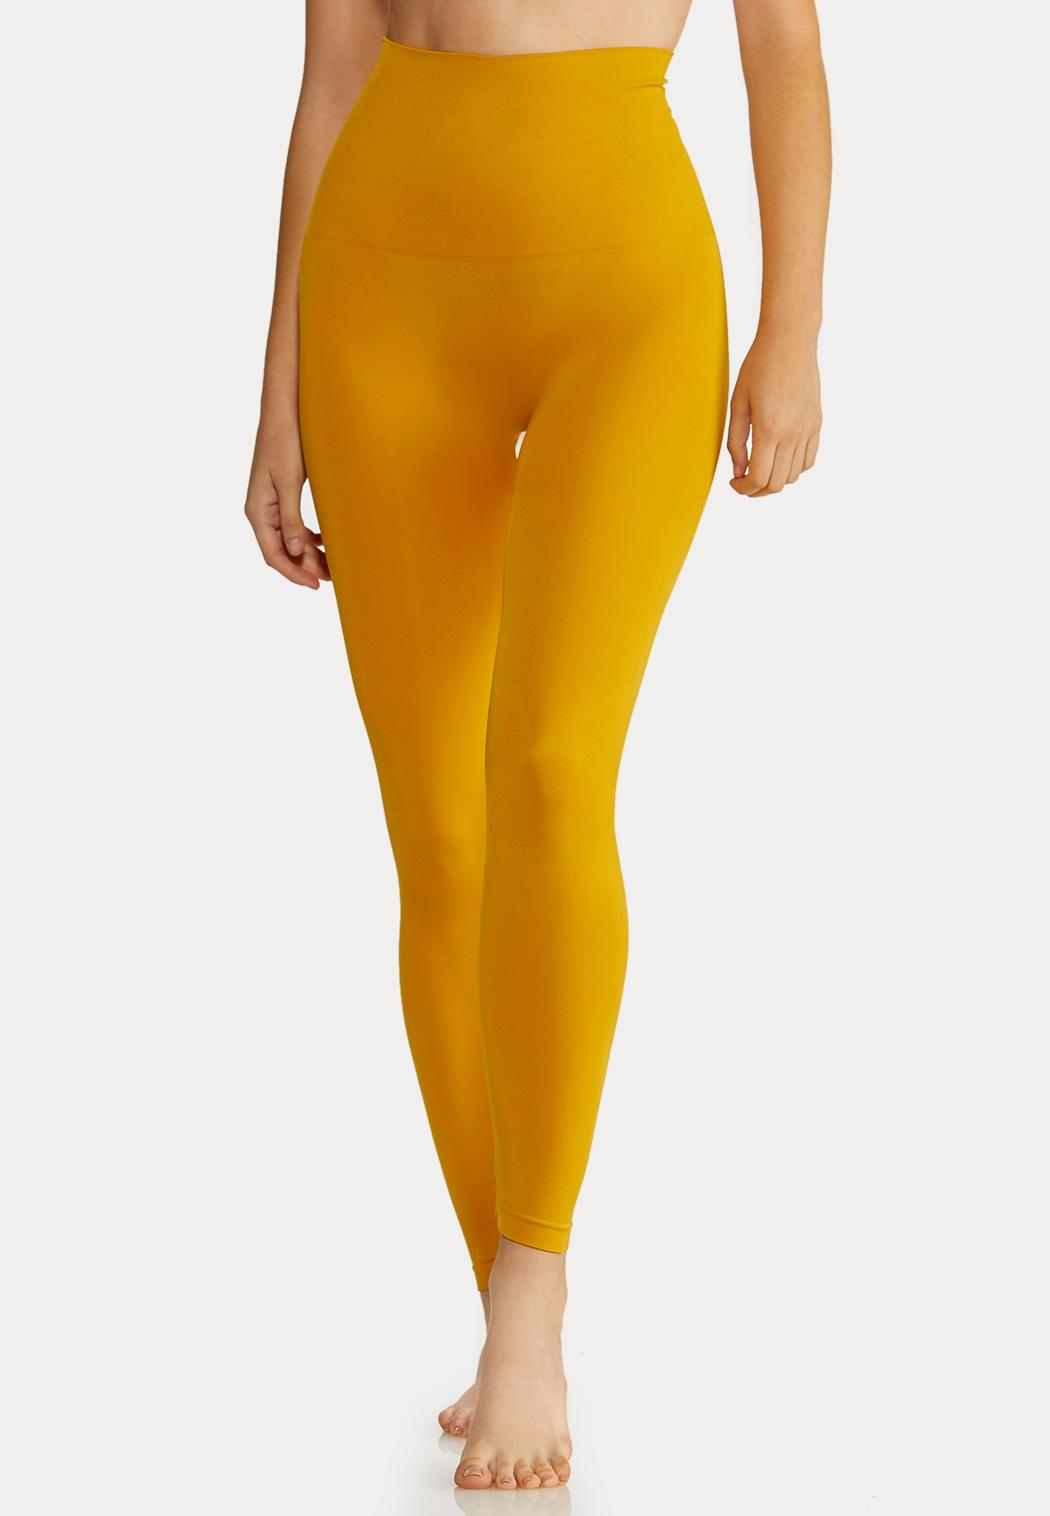 Plus Extended The Perfect Golden Shaping Leggings